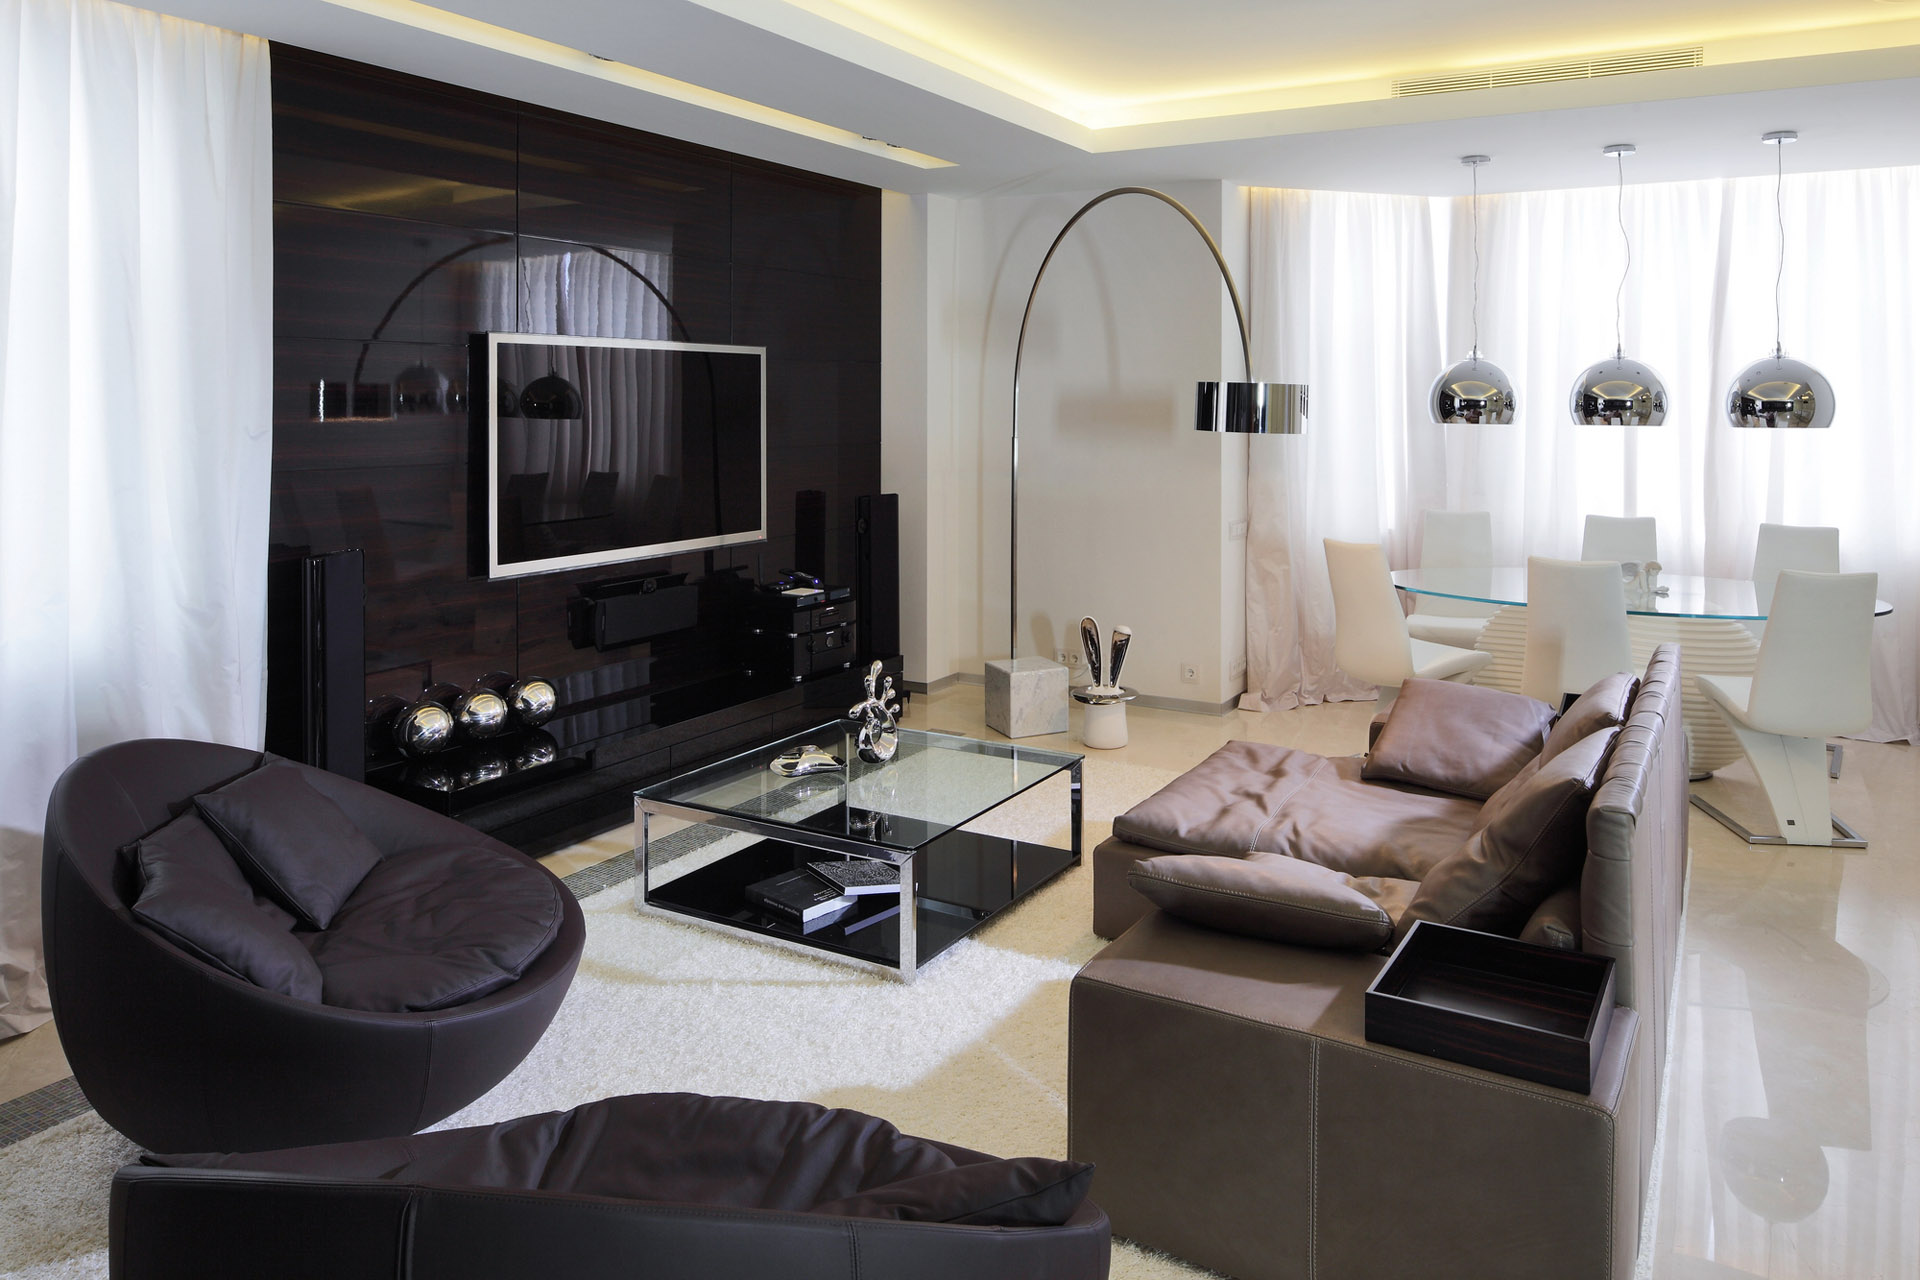 Beautiful-Modern-Living-Room-Design-with-Sofa-Bed-and-Glass-Table-Idea-feat-Black-Ball-Chair-Among-with-Flatscreen-TV-Plus-White-Rug-Also-Flooring-Arch-Lamp-Decoration-Ideas